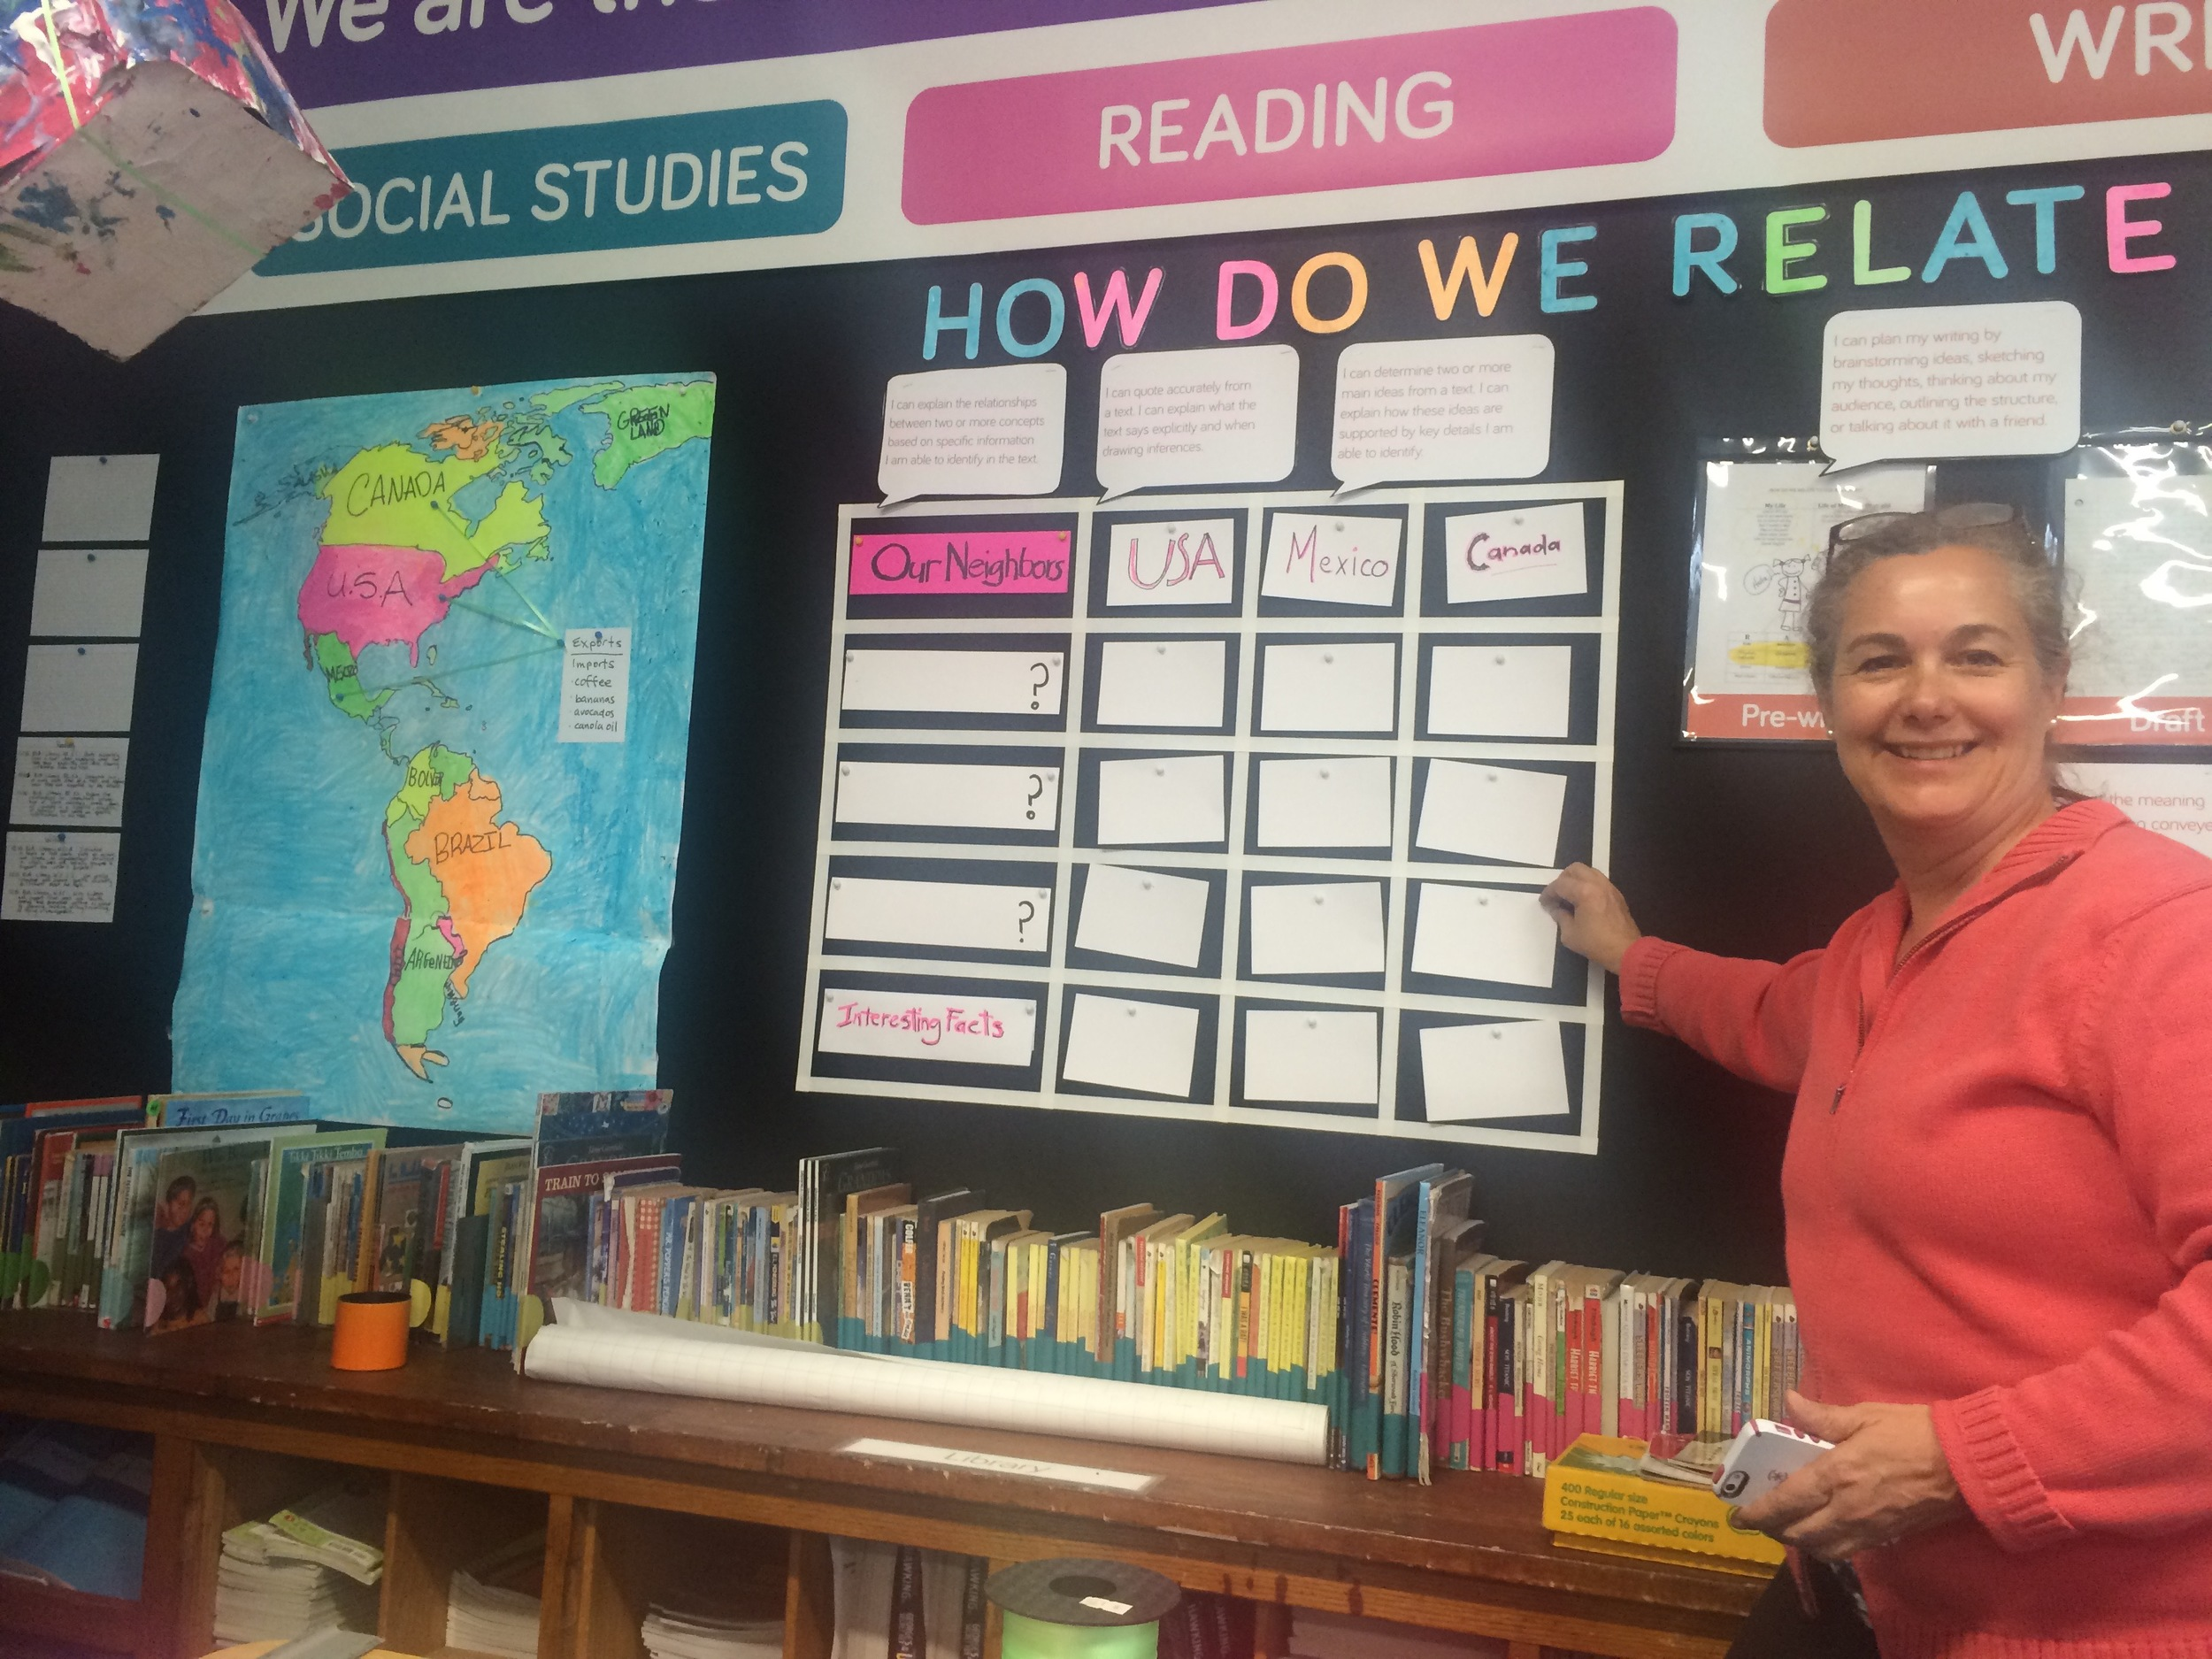 Dr. Galarce puts up a question card under the Reading section of the wall. Students were encouraged to write questions that related to the 3 countries of the USA, Mexico and Canada.